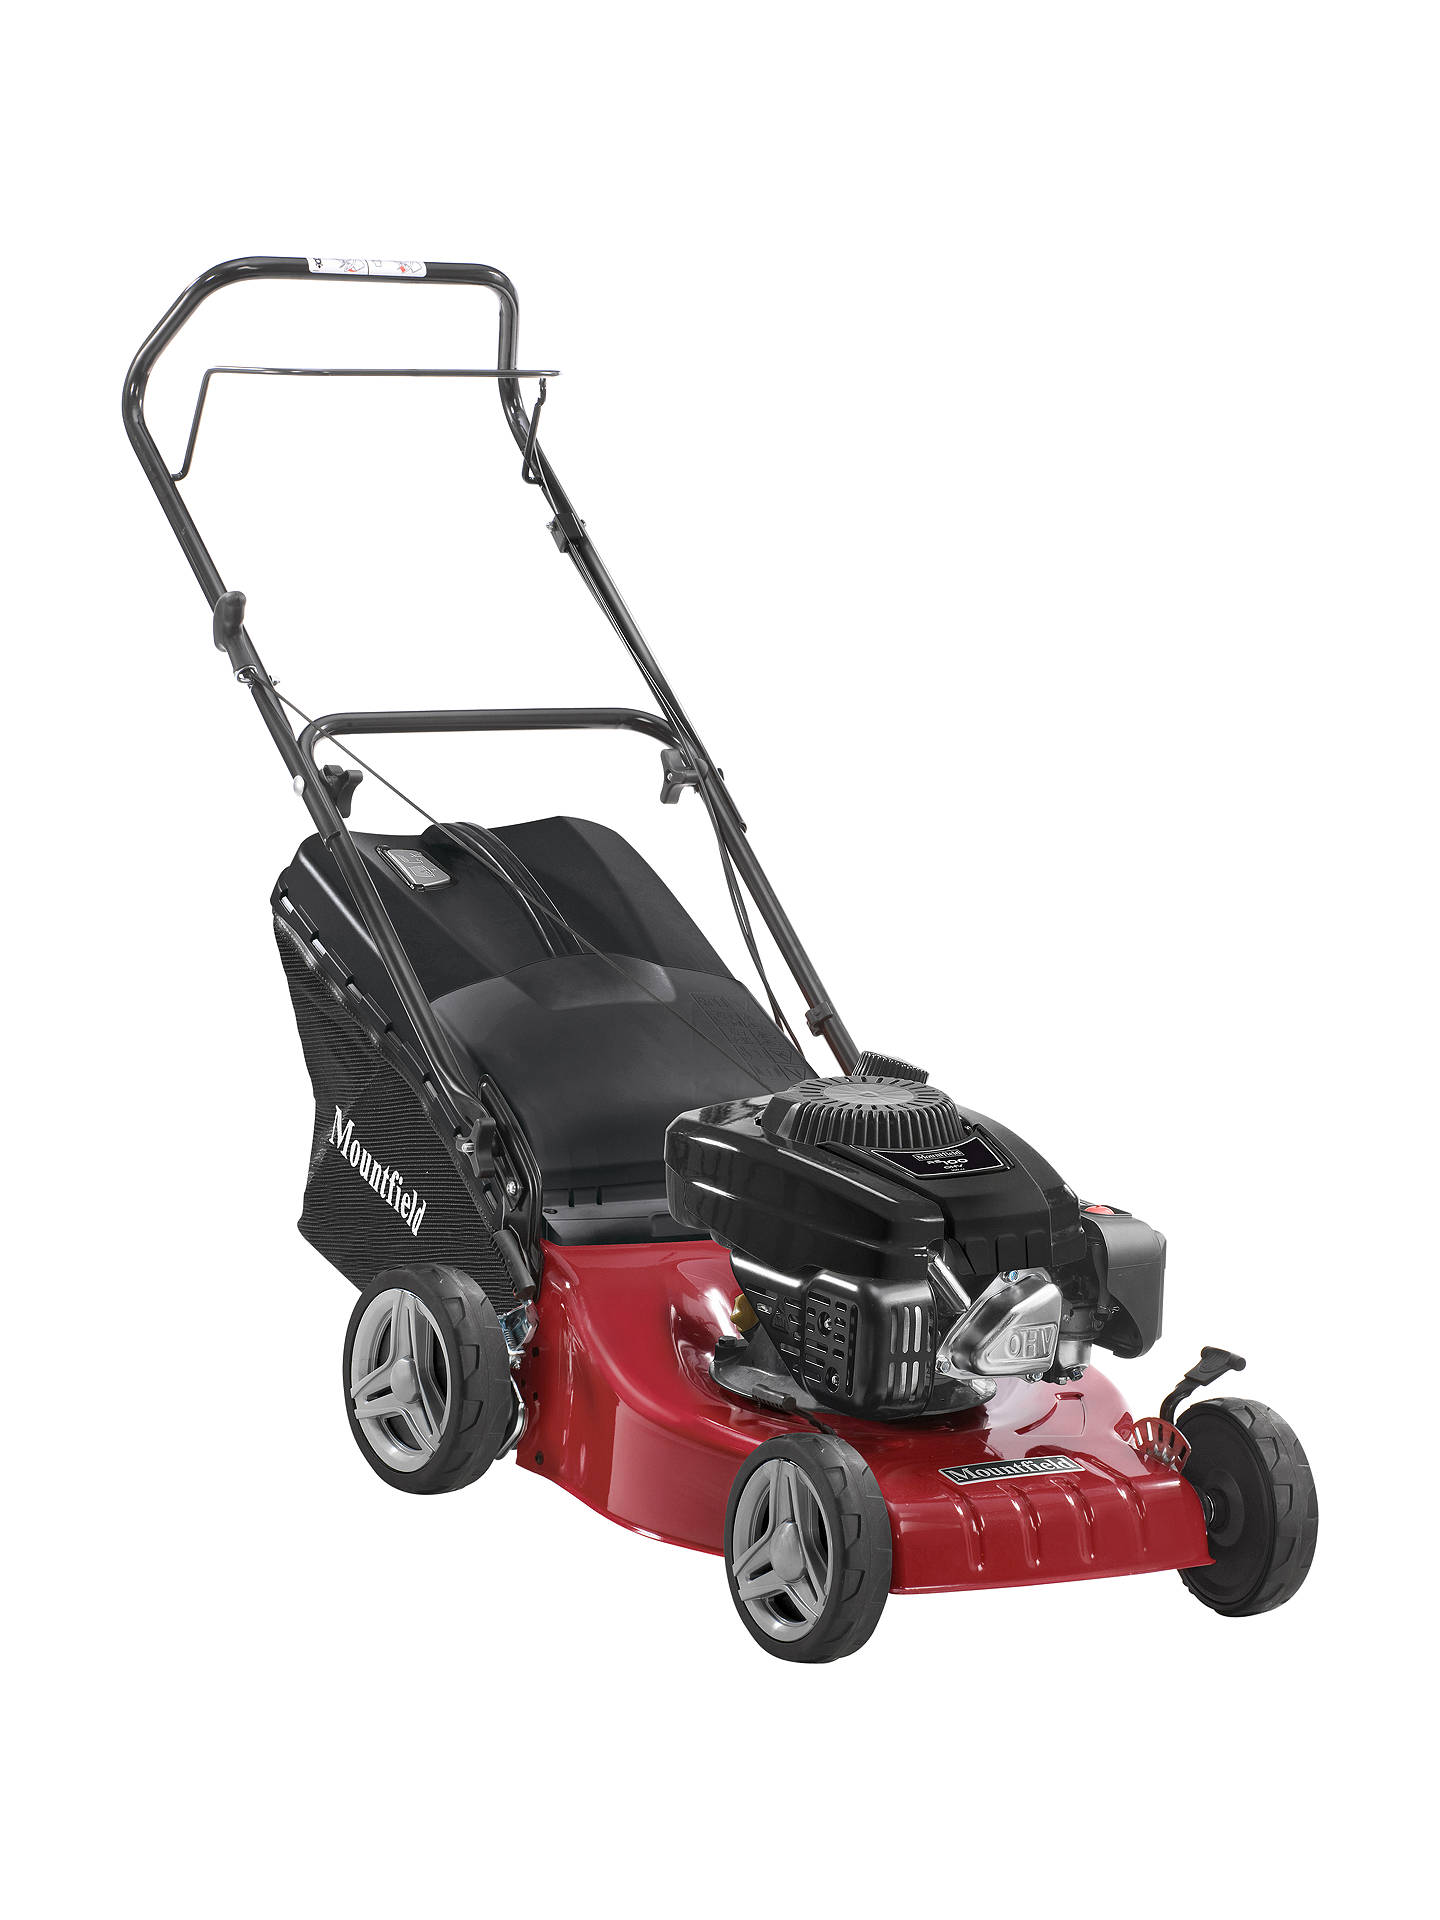 BuyMountfield S421HP 41cm Hand-Propelled Petrol Lawnmower Online at johnlewis.com